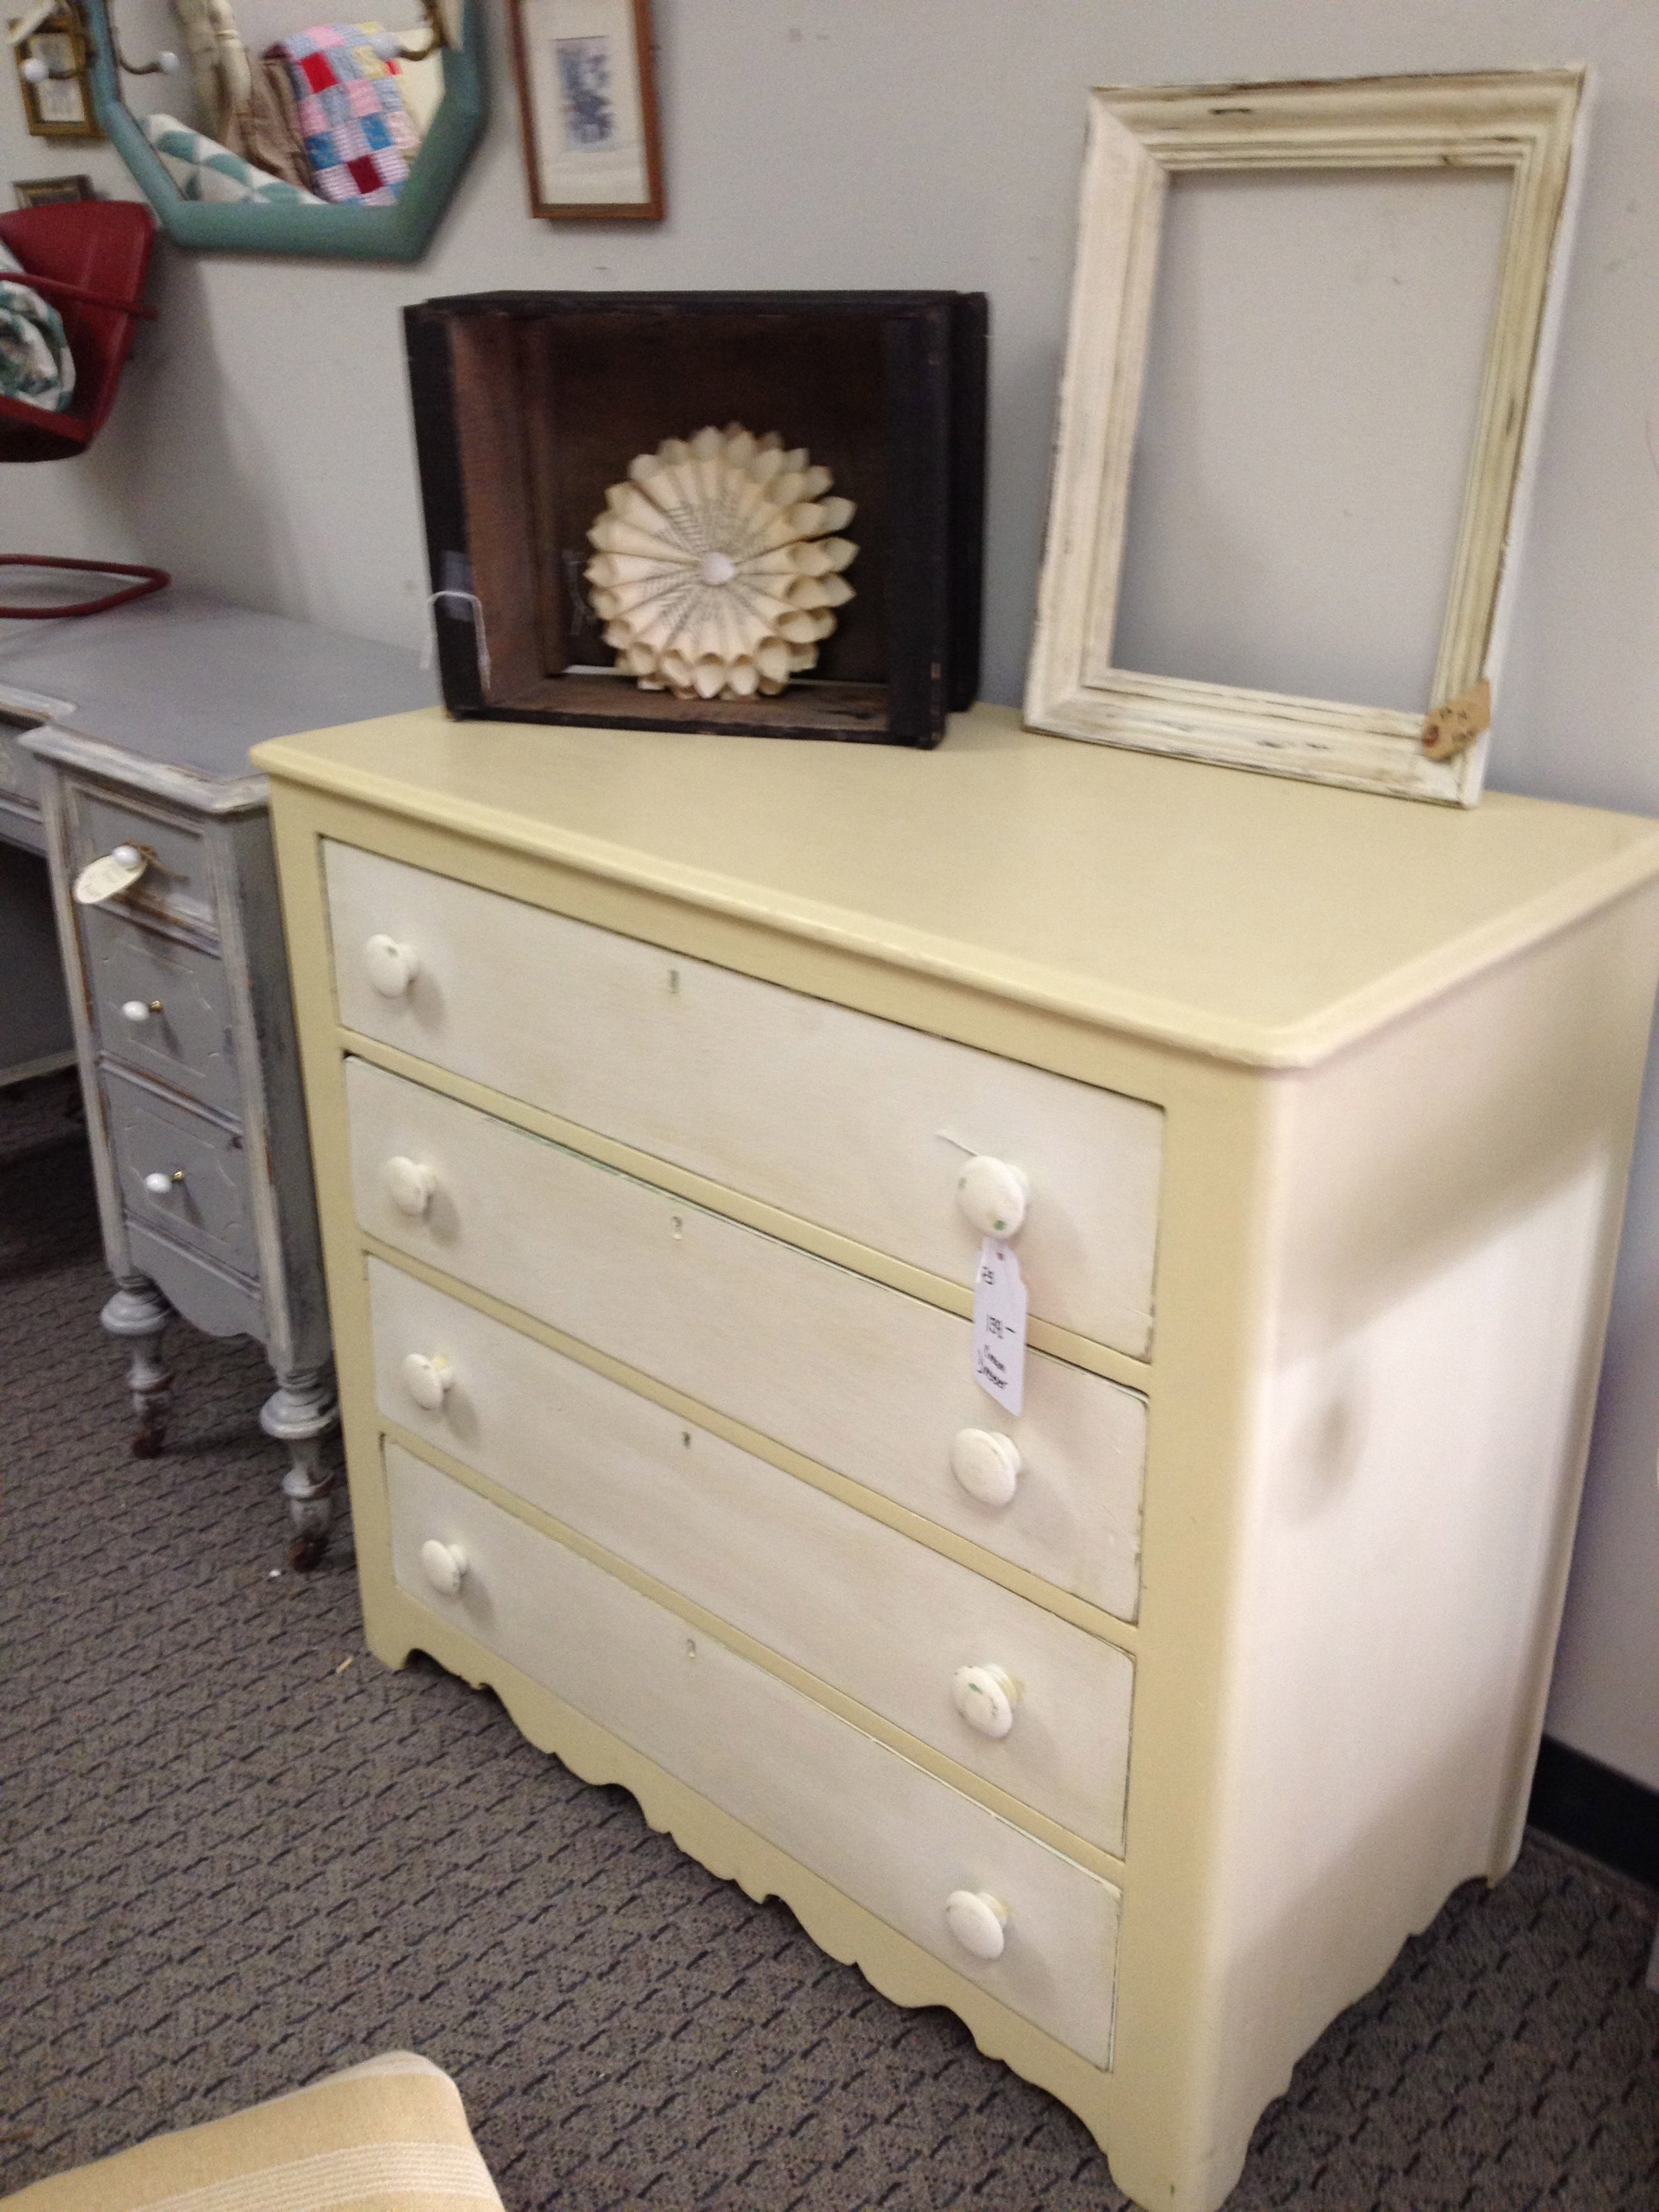 10 Pretty Annie Sloan Painted Furniture Ideas annie sloan cream and old white dresser things ive painted 2020